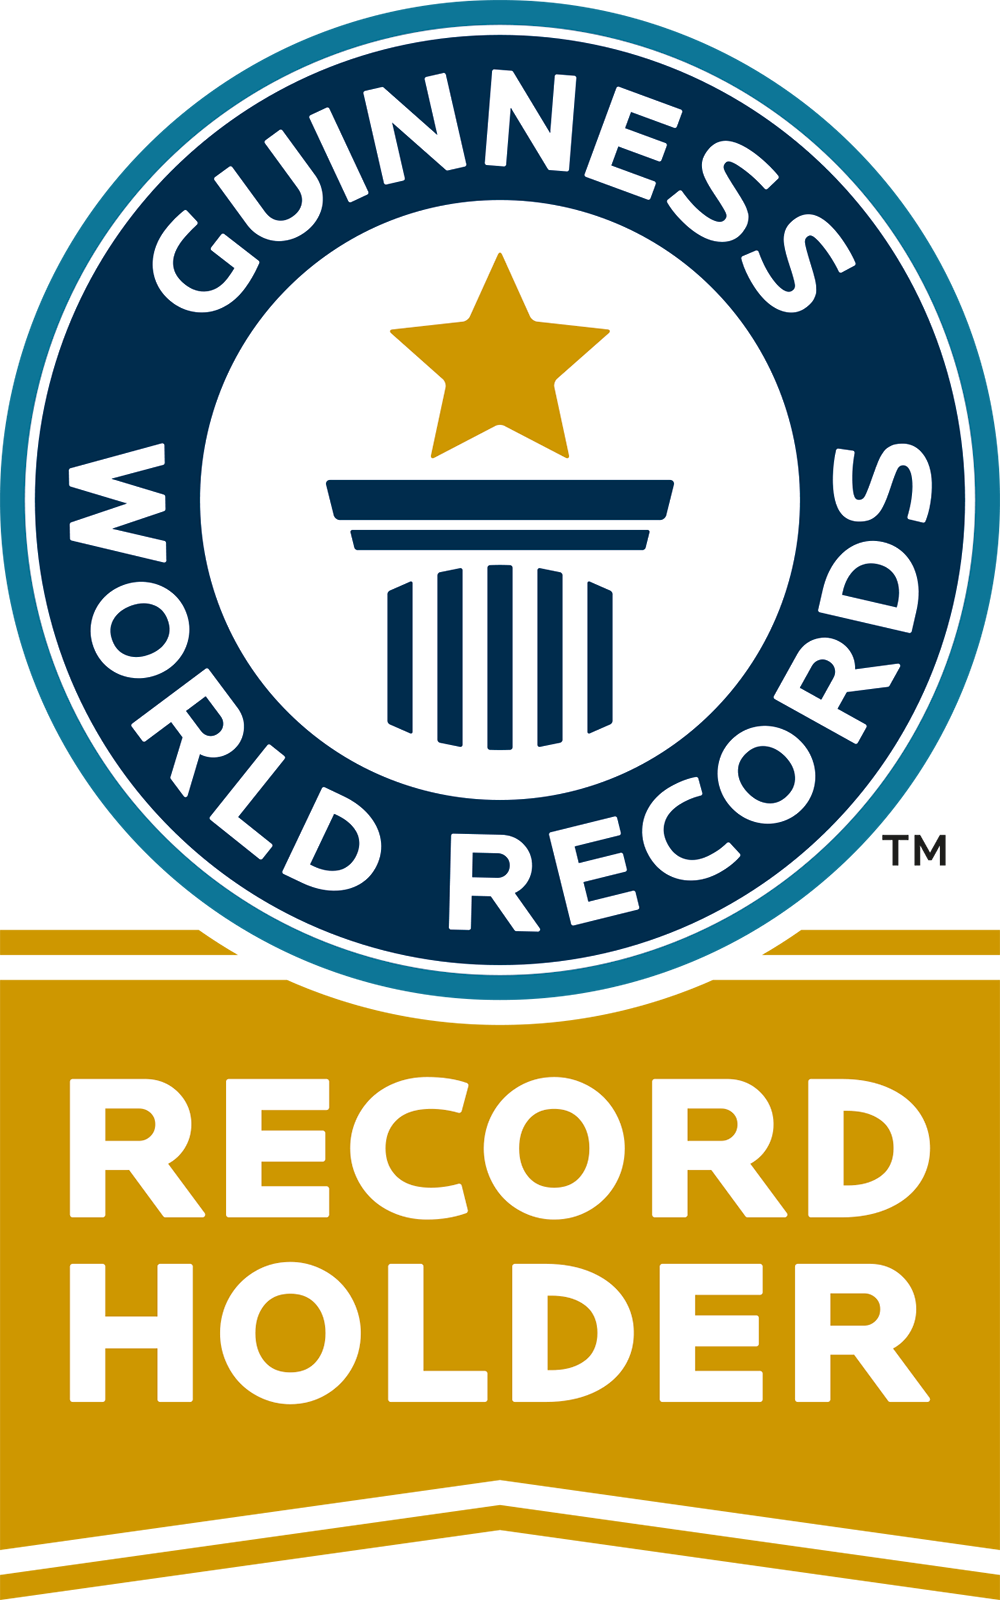 WORLD RECORD HOLDER